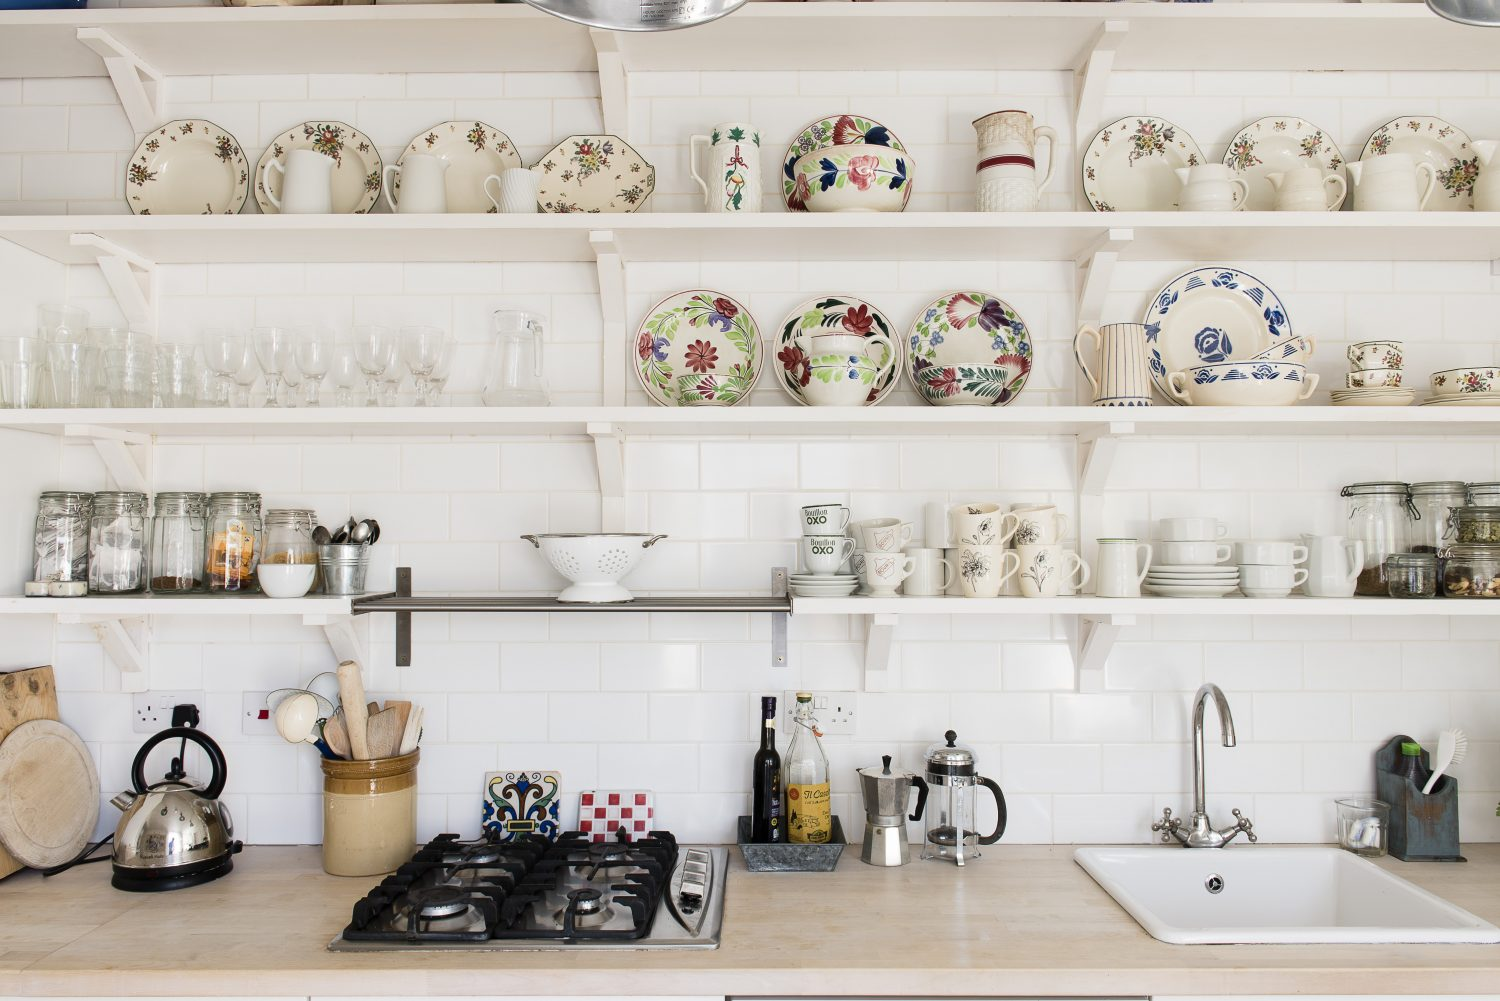 The kitchen shelves adorned with colourful kitchenware